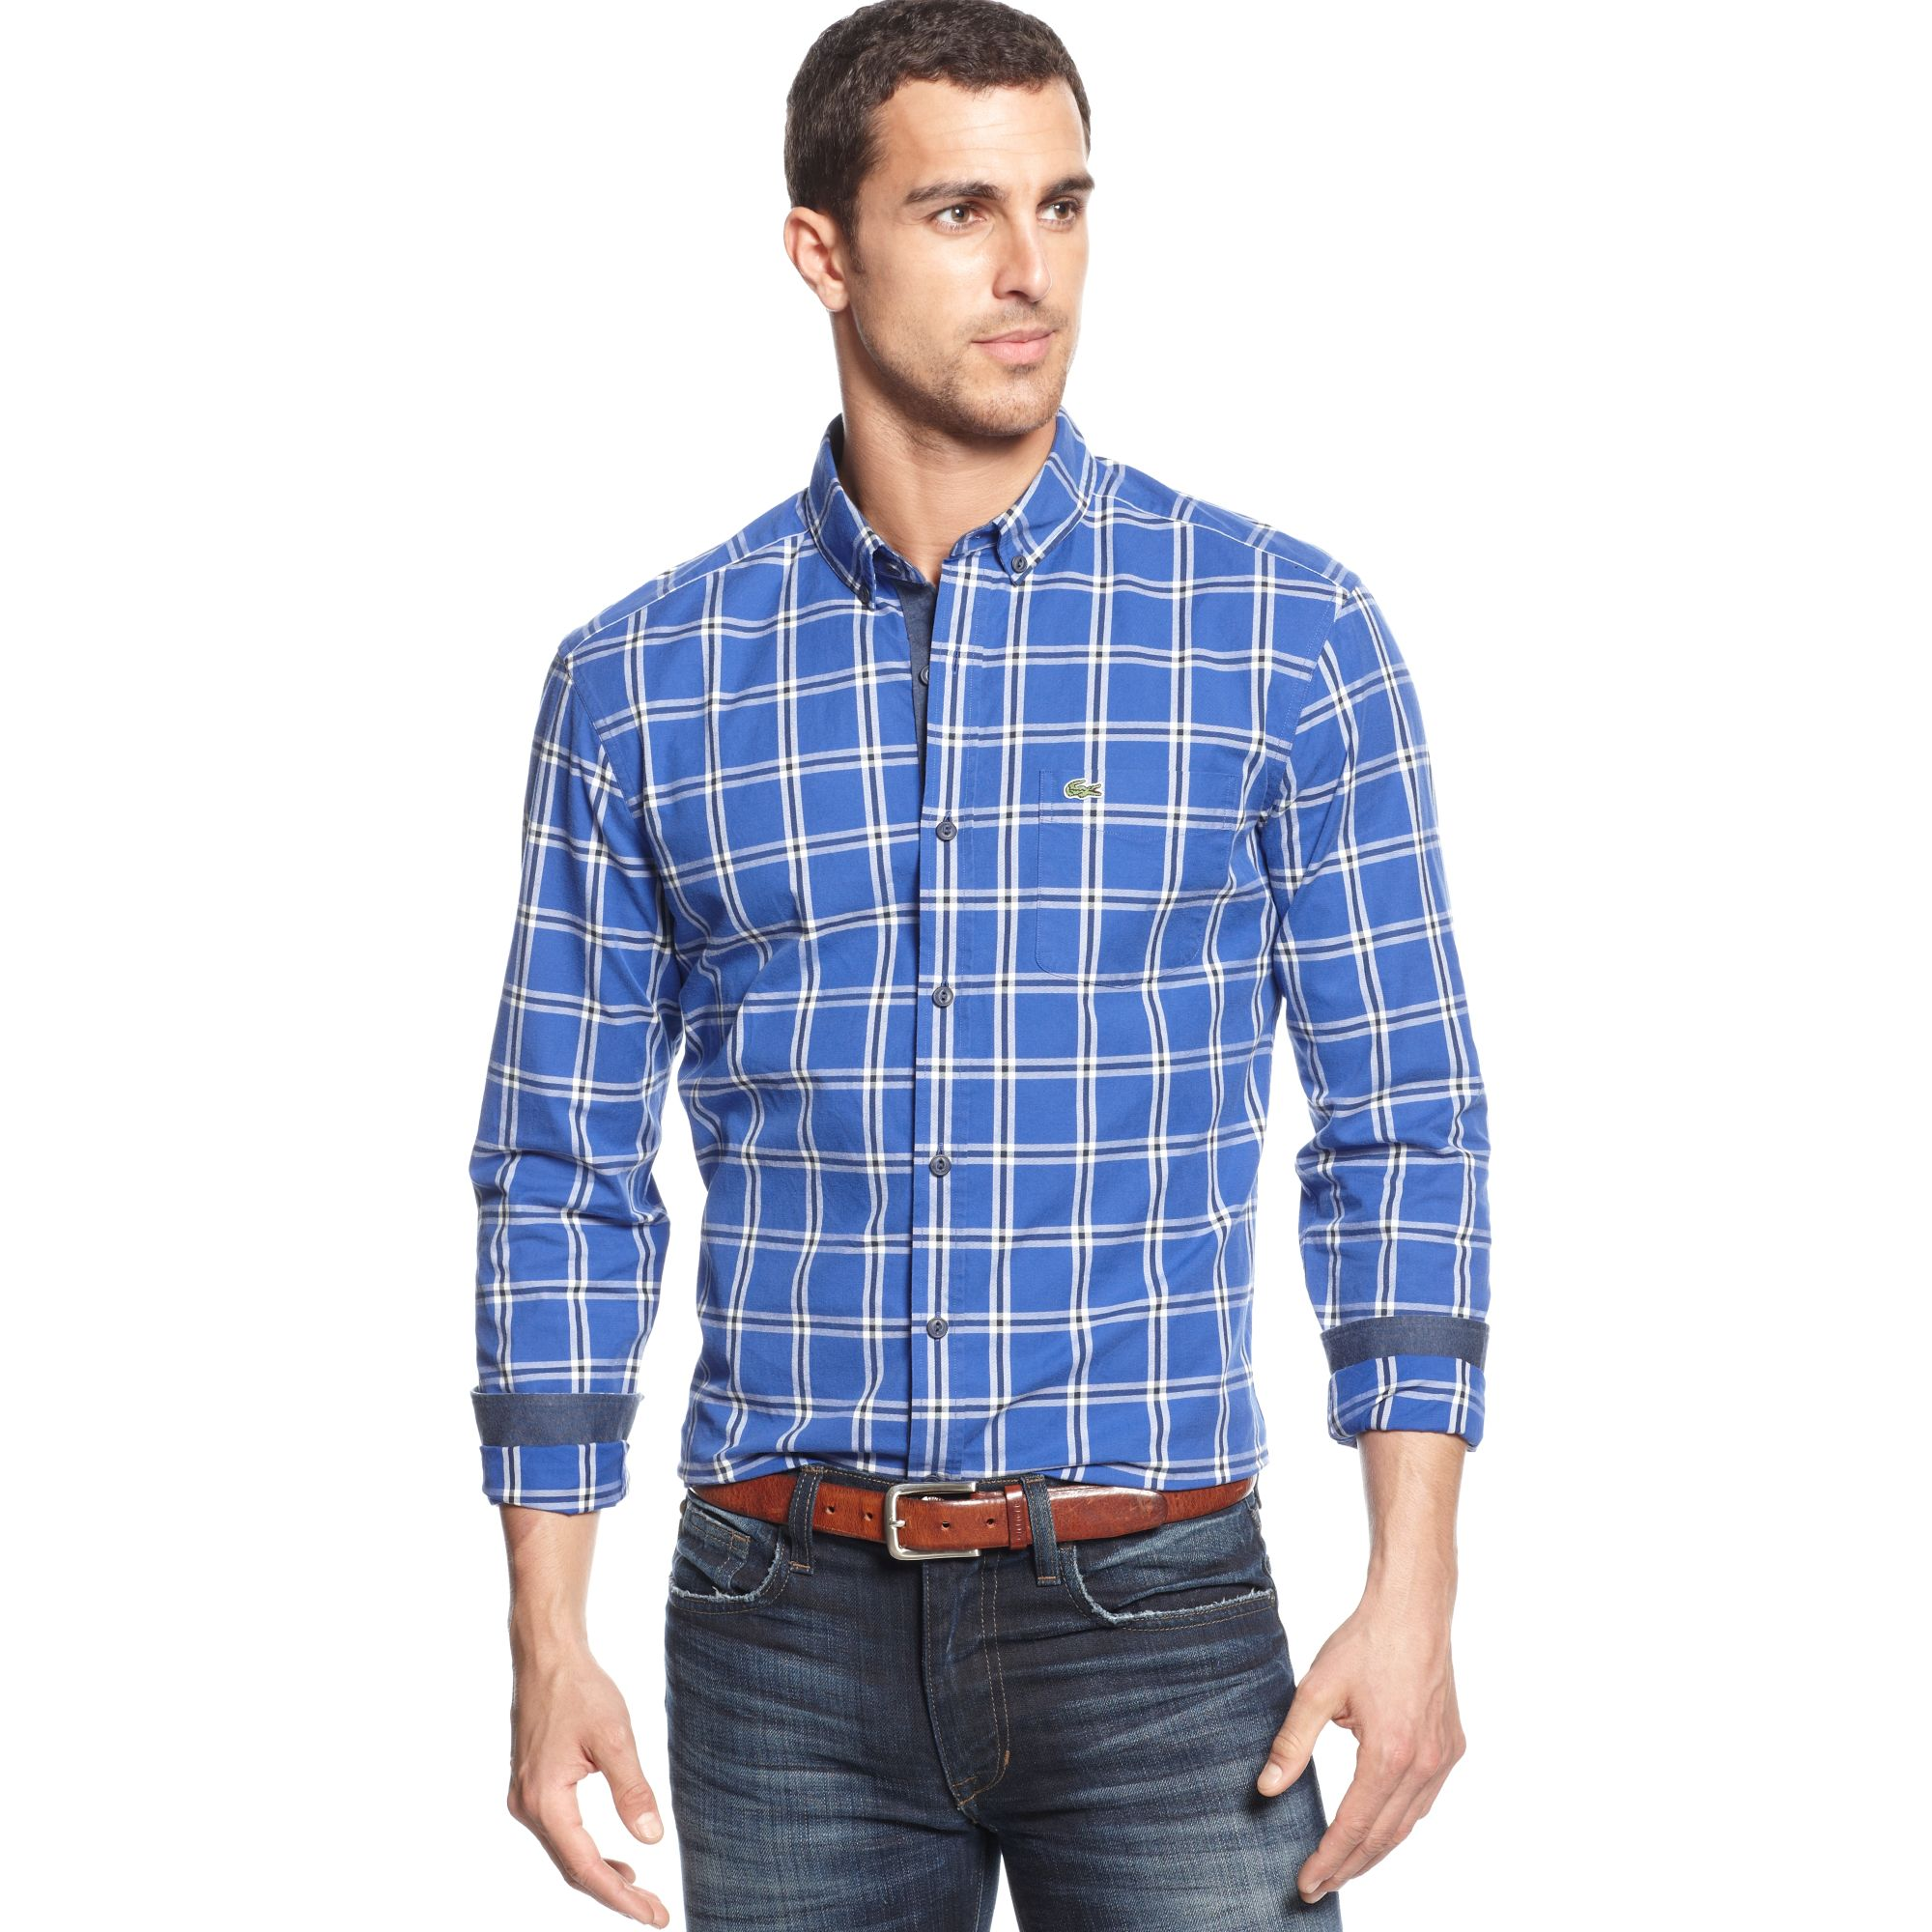 Lacoste Longsleeve Twill Plaid Shirt In Blue For Men Lyst